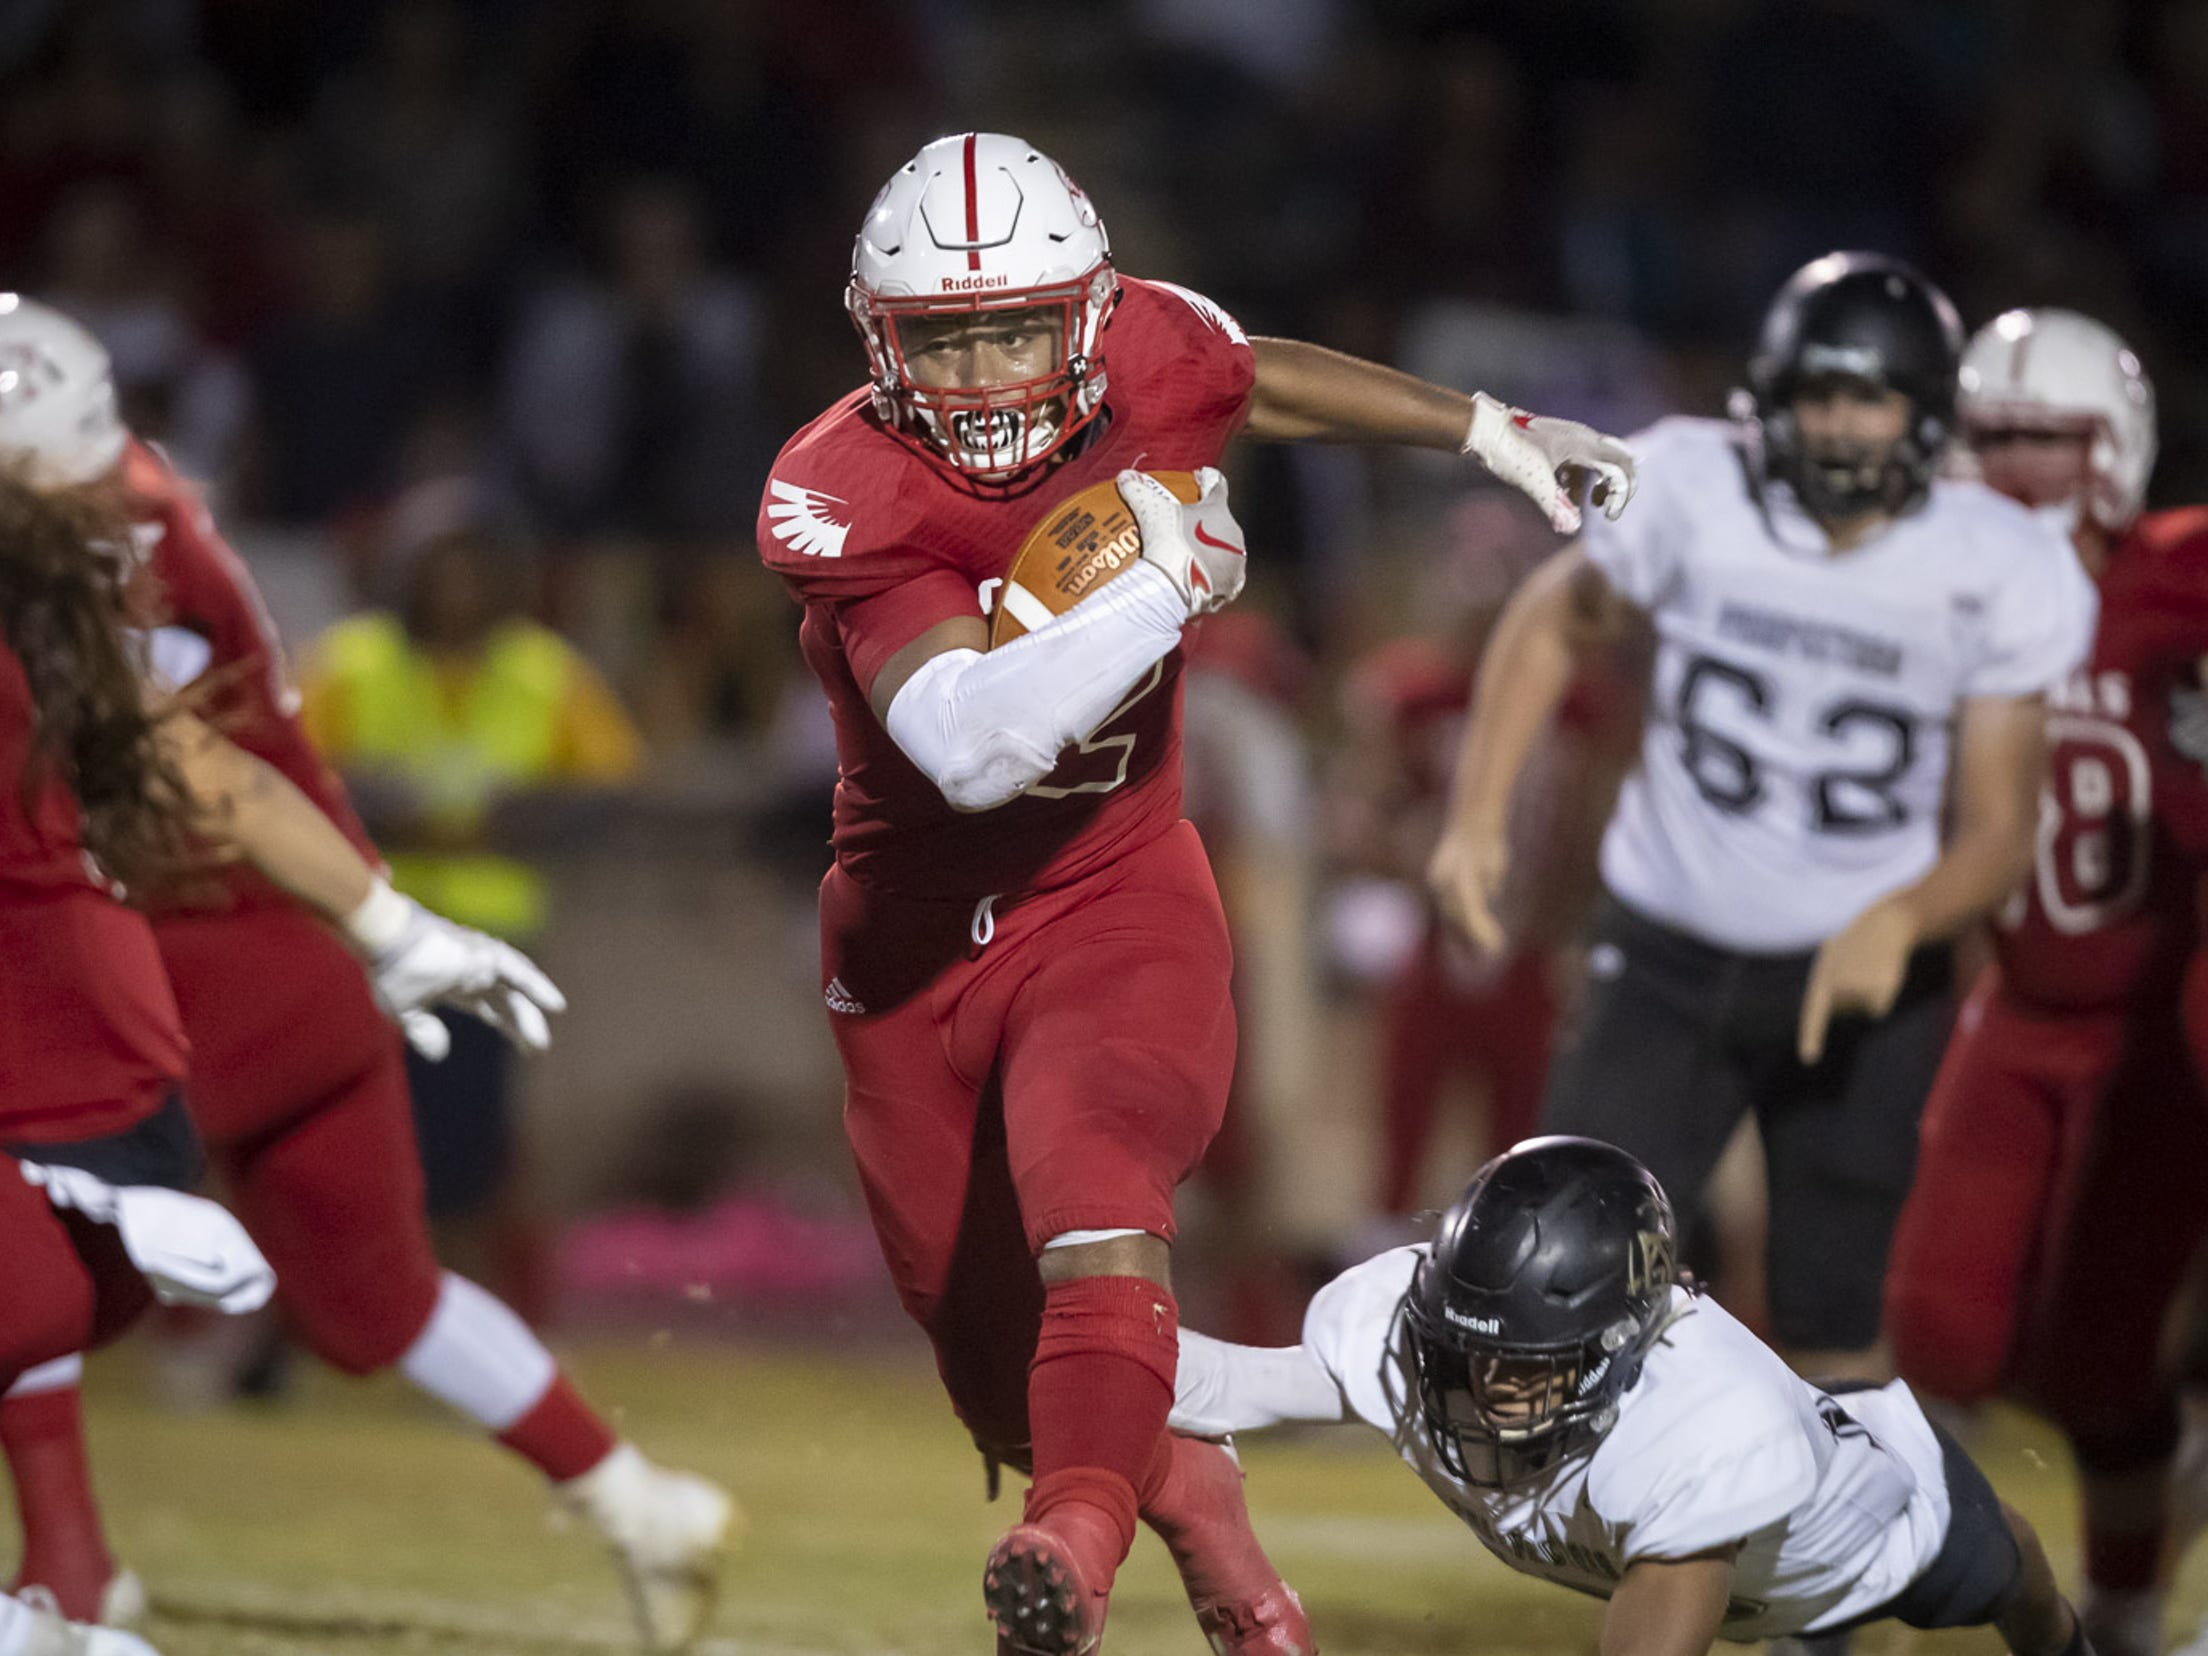 Junior running back Kevin Daniels (2) of the Glendale Cardinals runs the ball against the Apache Junction Prospectors at Glendale High School on Friday, October 19, 2018 in Glendale, Arizona. #azhsfb